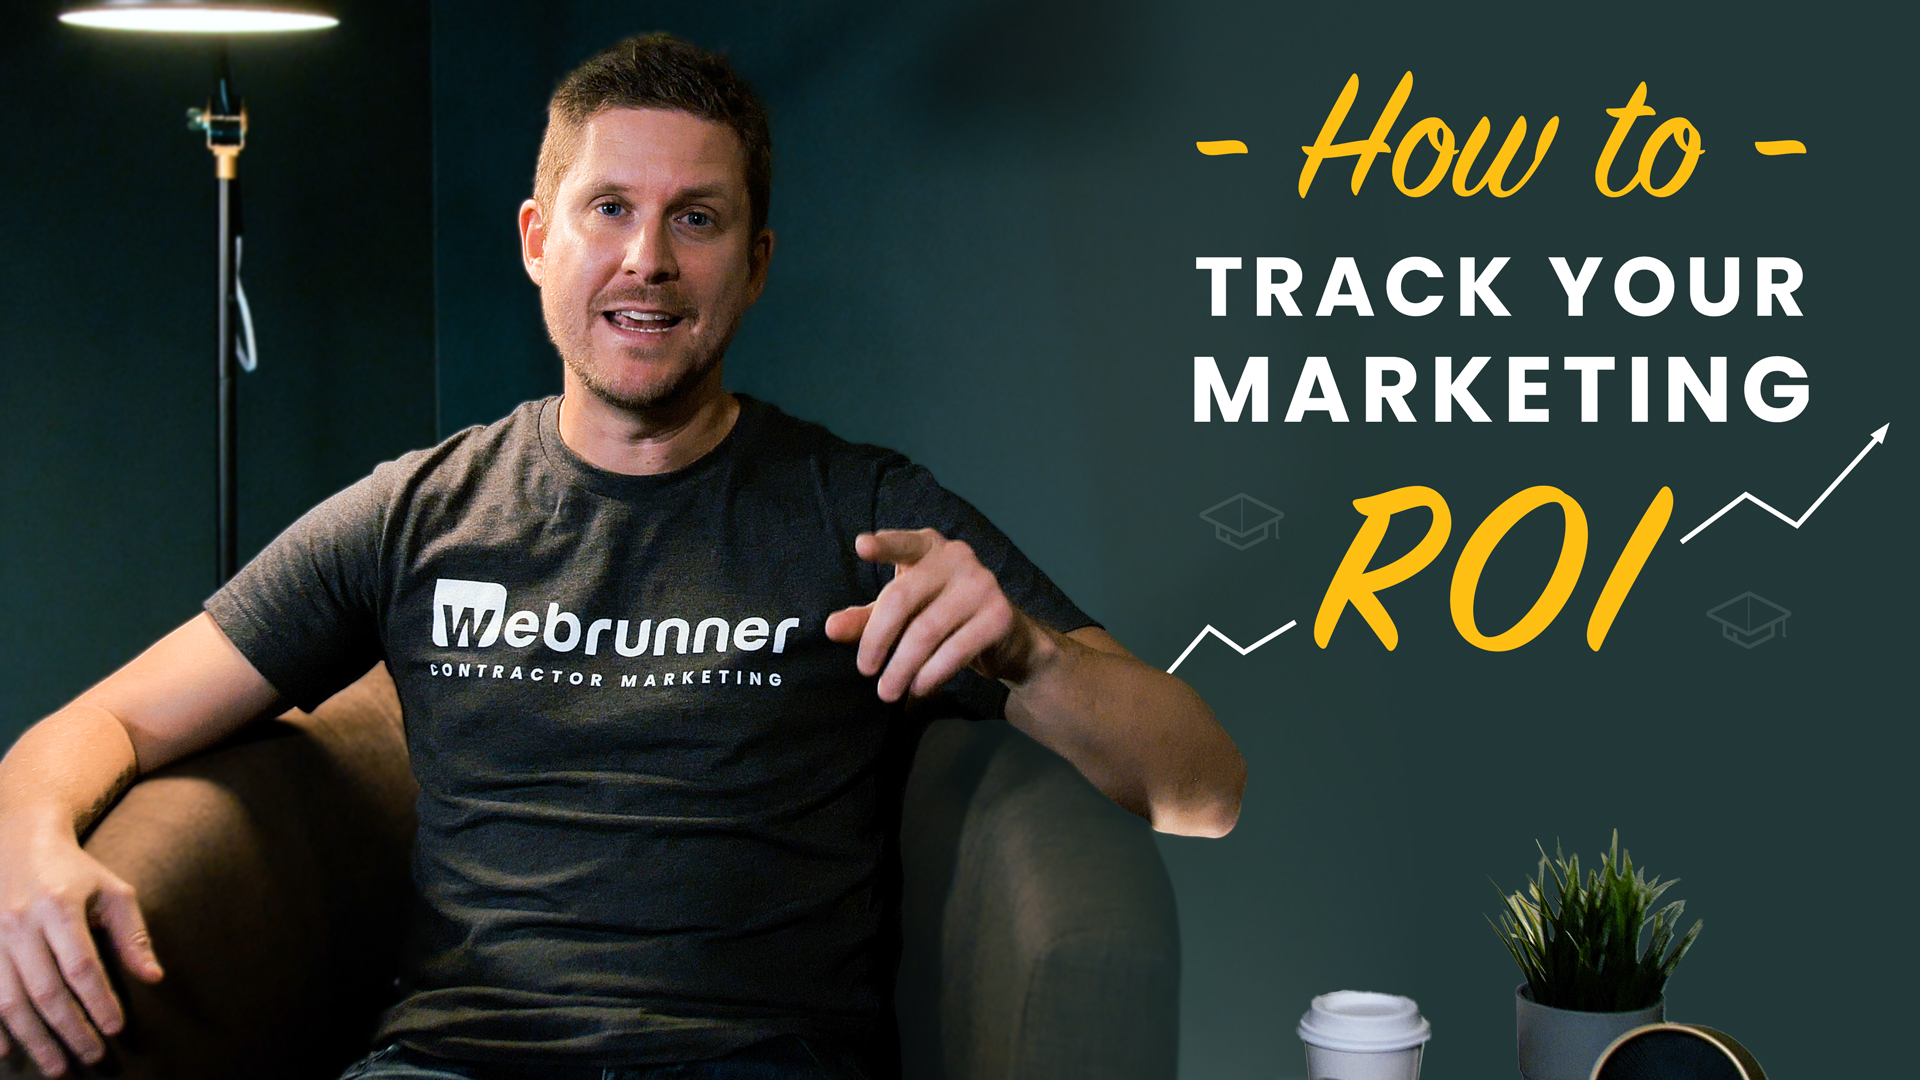 How to Track Your Marketing ROI and Make Smarter Business Decisions